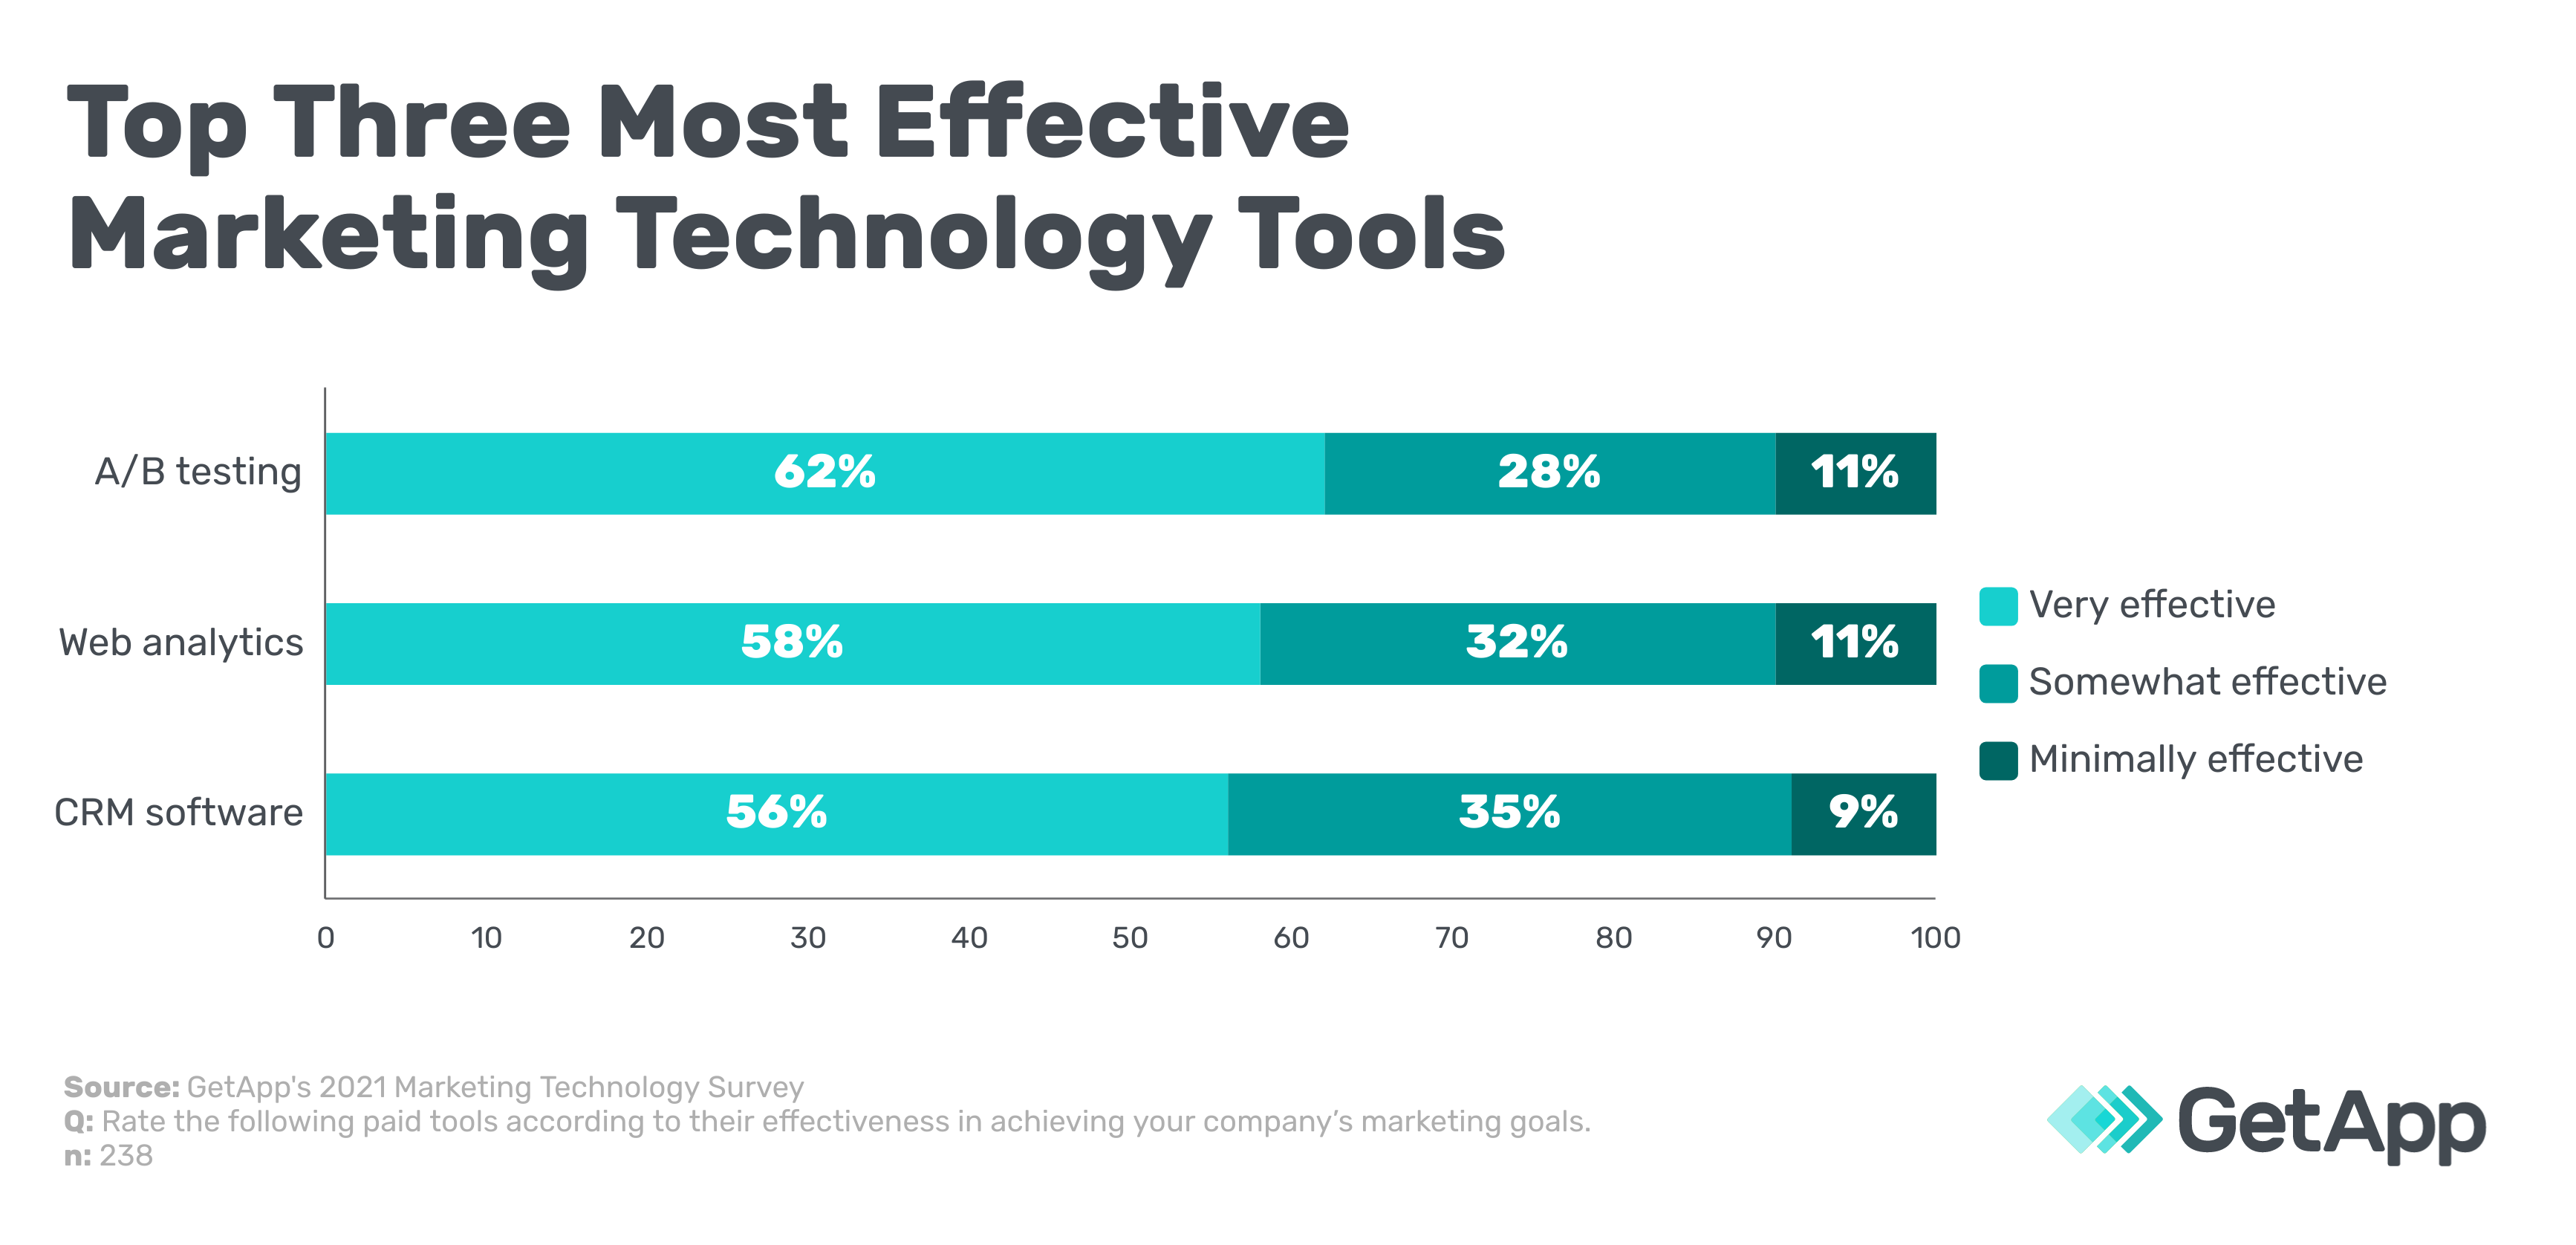 Top three most effective marketing technology tools